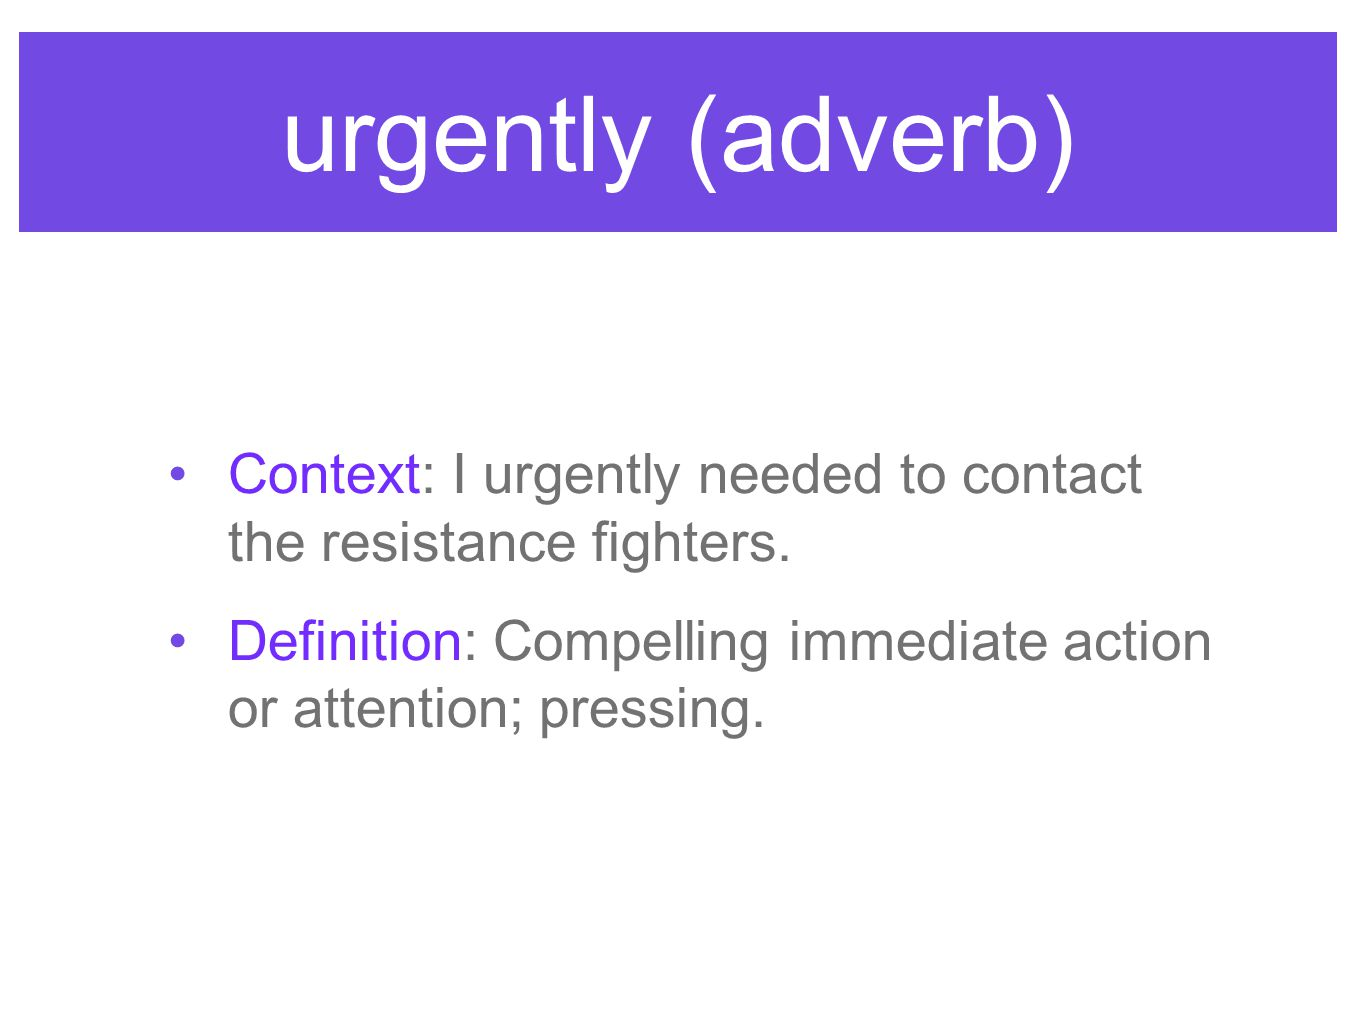 urgently (adverb) Context: I urgently needed to contact the resistance fighters. Definition: Compelling immediate action or attention; pressing.